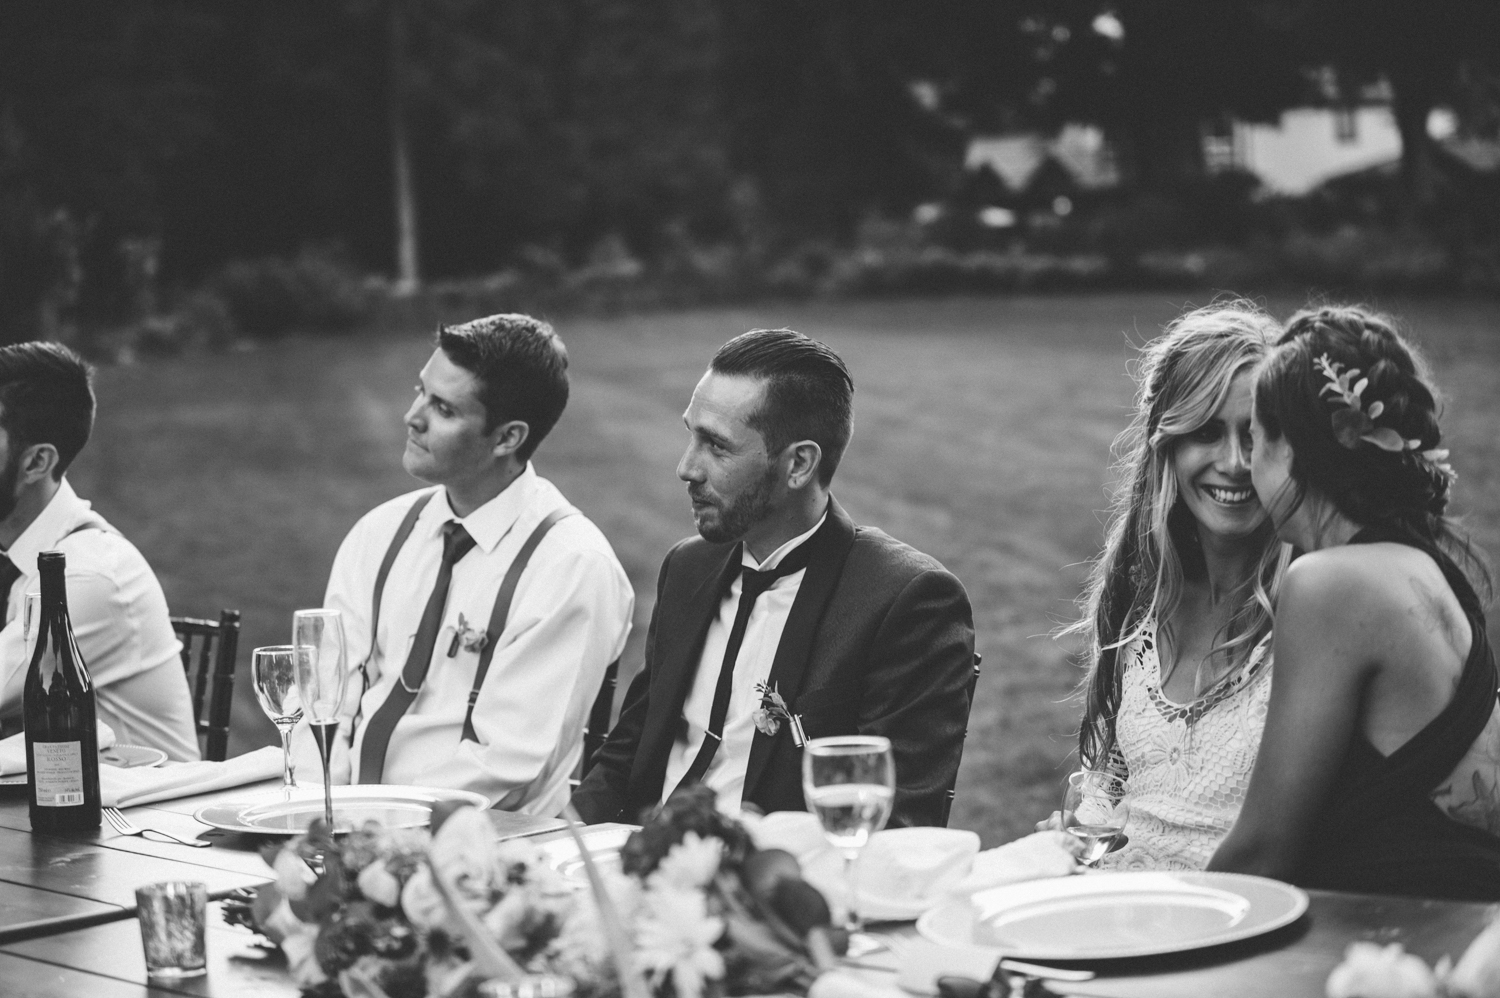 Kelowna Summer modern boho wedding-jessika hunter photo-50.JPG